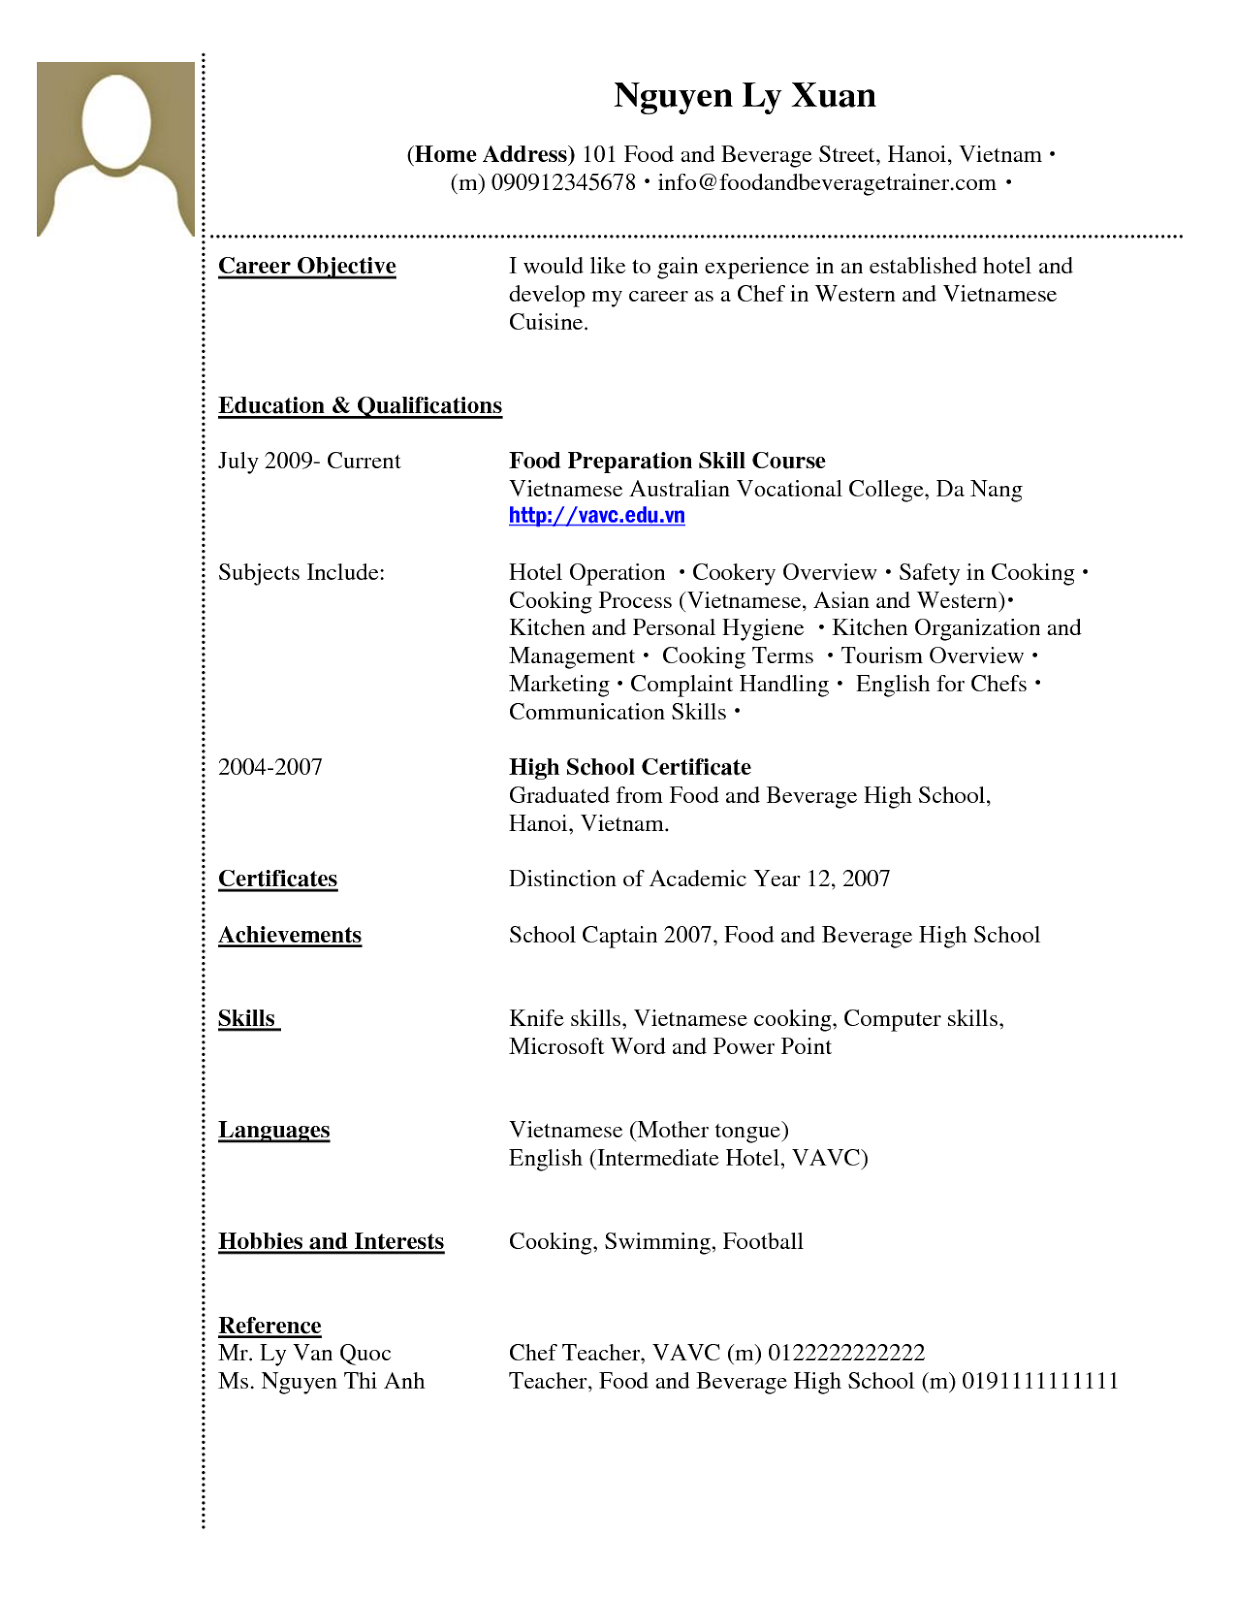 resume templates for highschool students coverletter resume templates for highschool students 10 high school resume templates samples examples resume